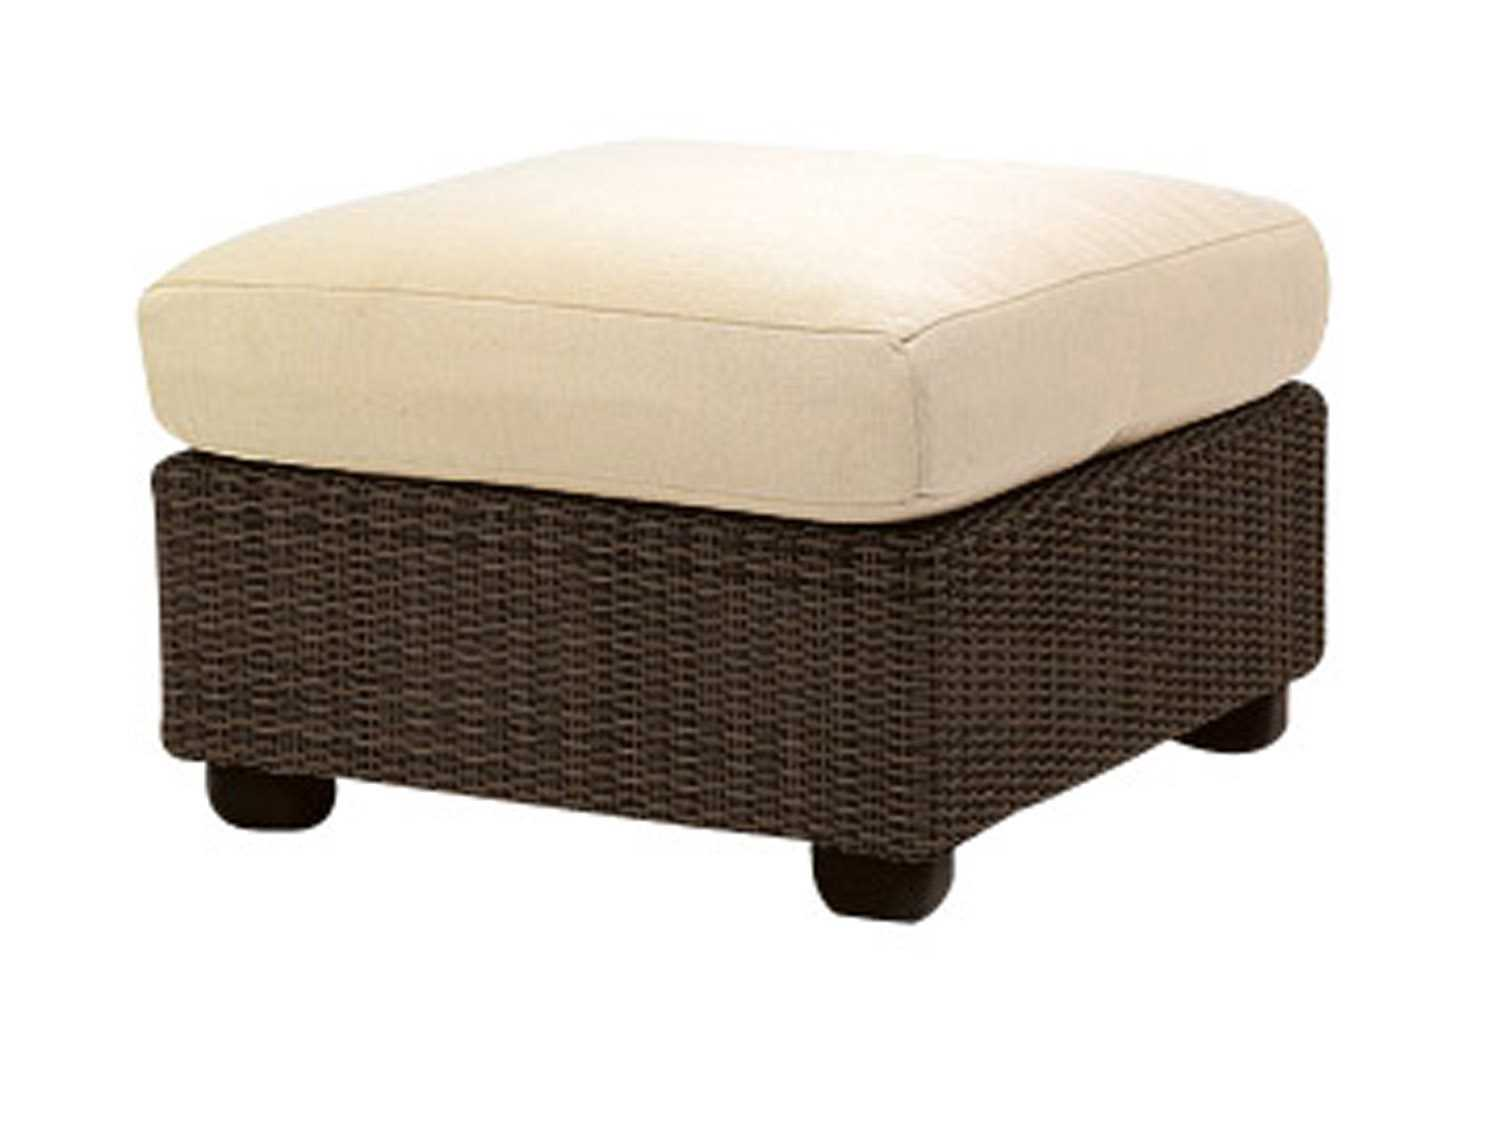 Patio cushions ottoman ultimatepatio large for Stuhl quietscht